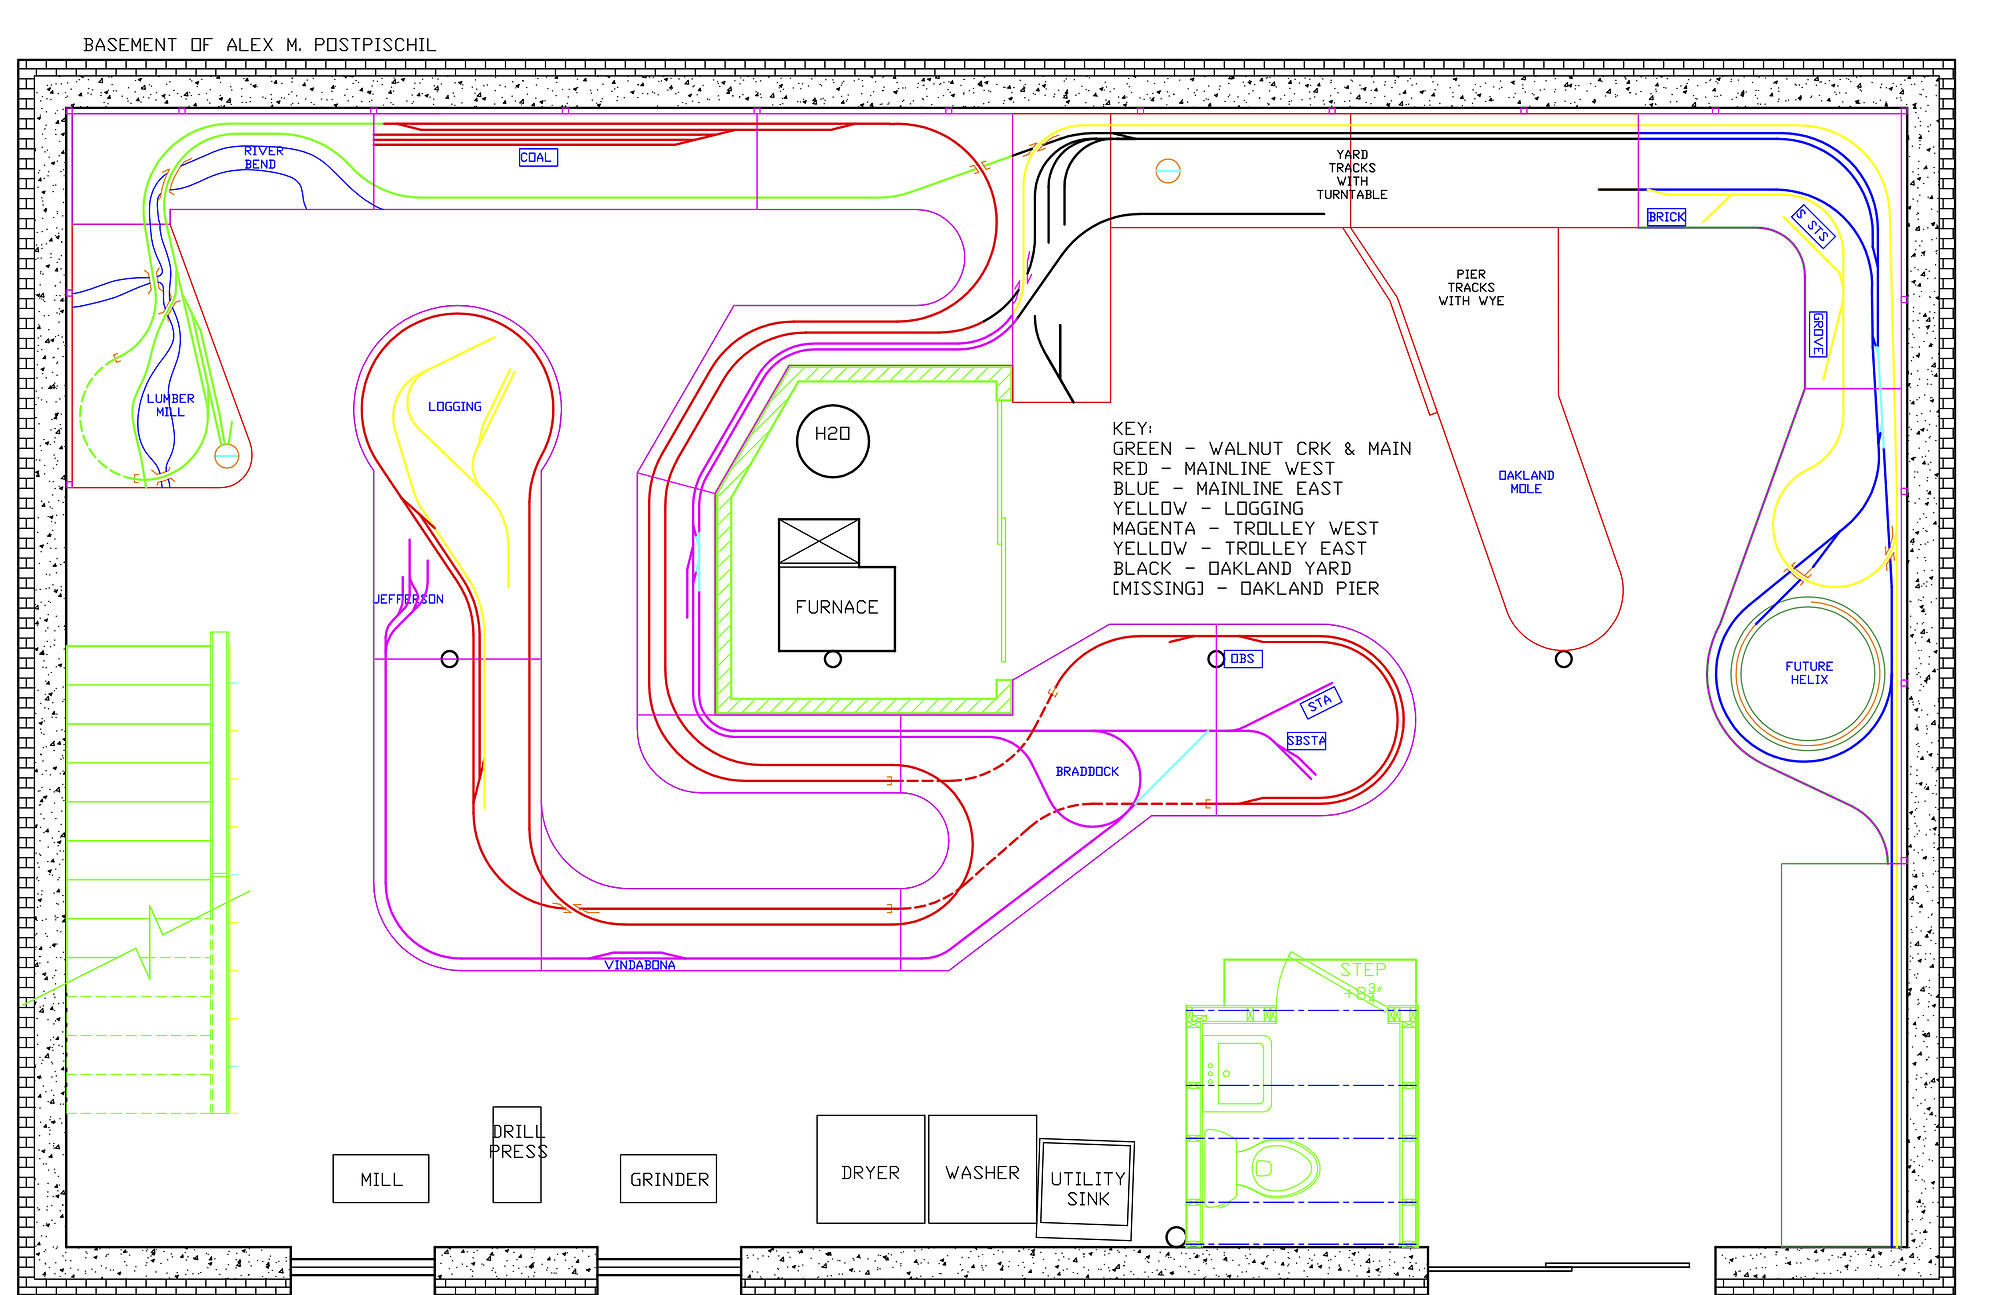 dcc wiring diagram fresh layout electrical for car digitrax decoder nce